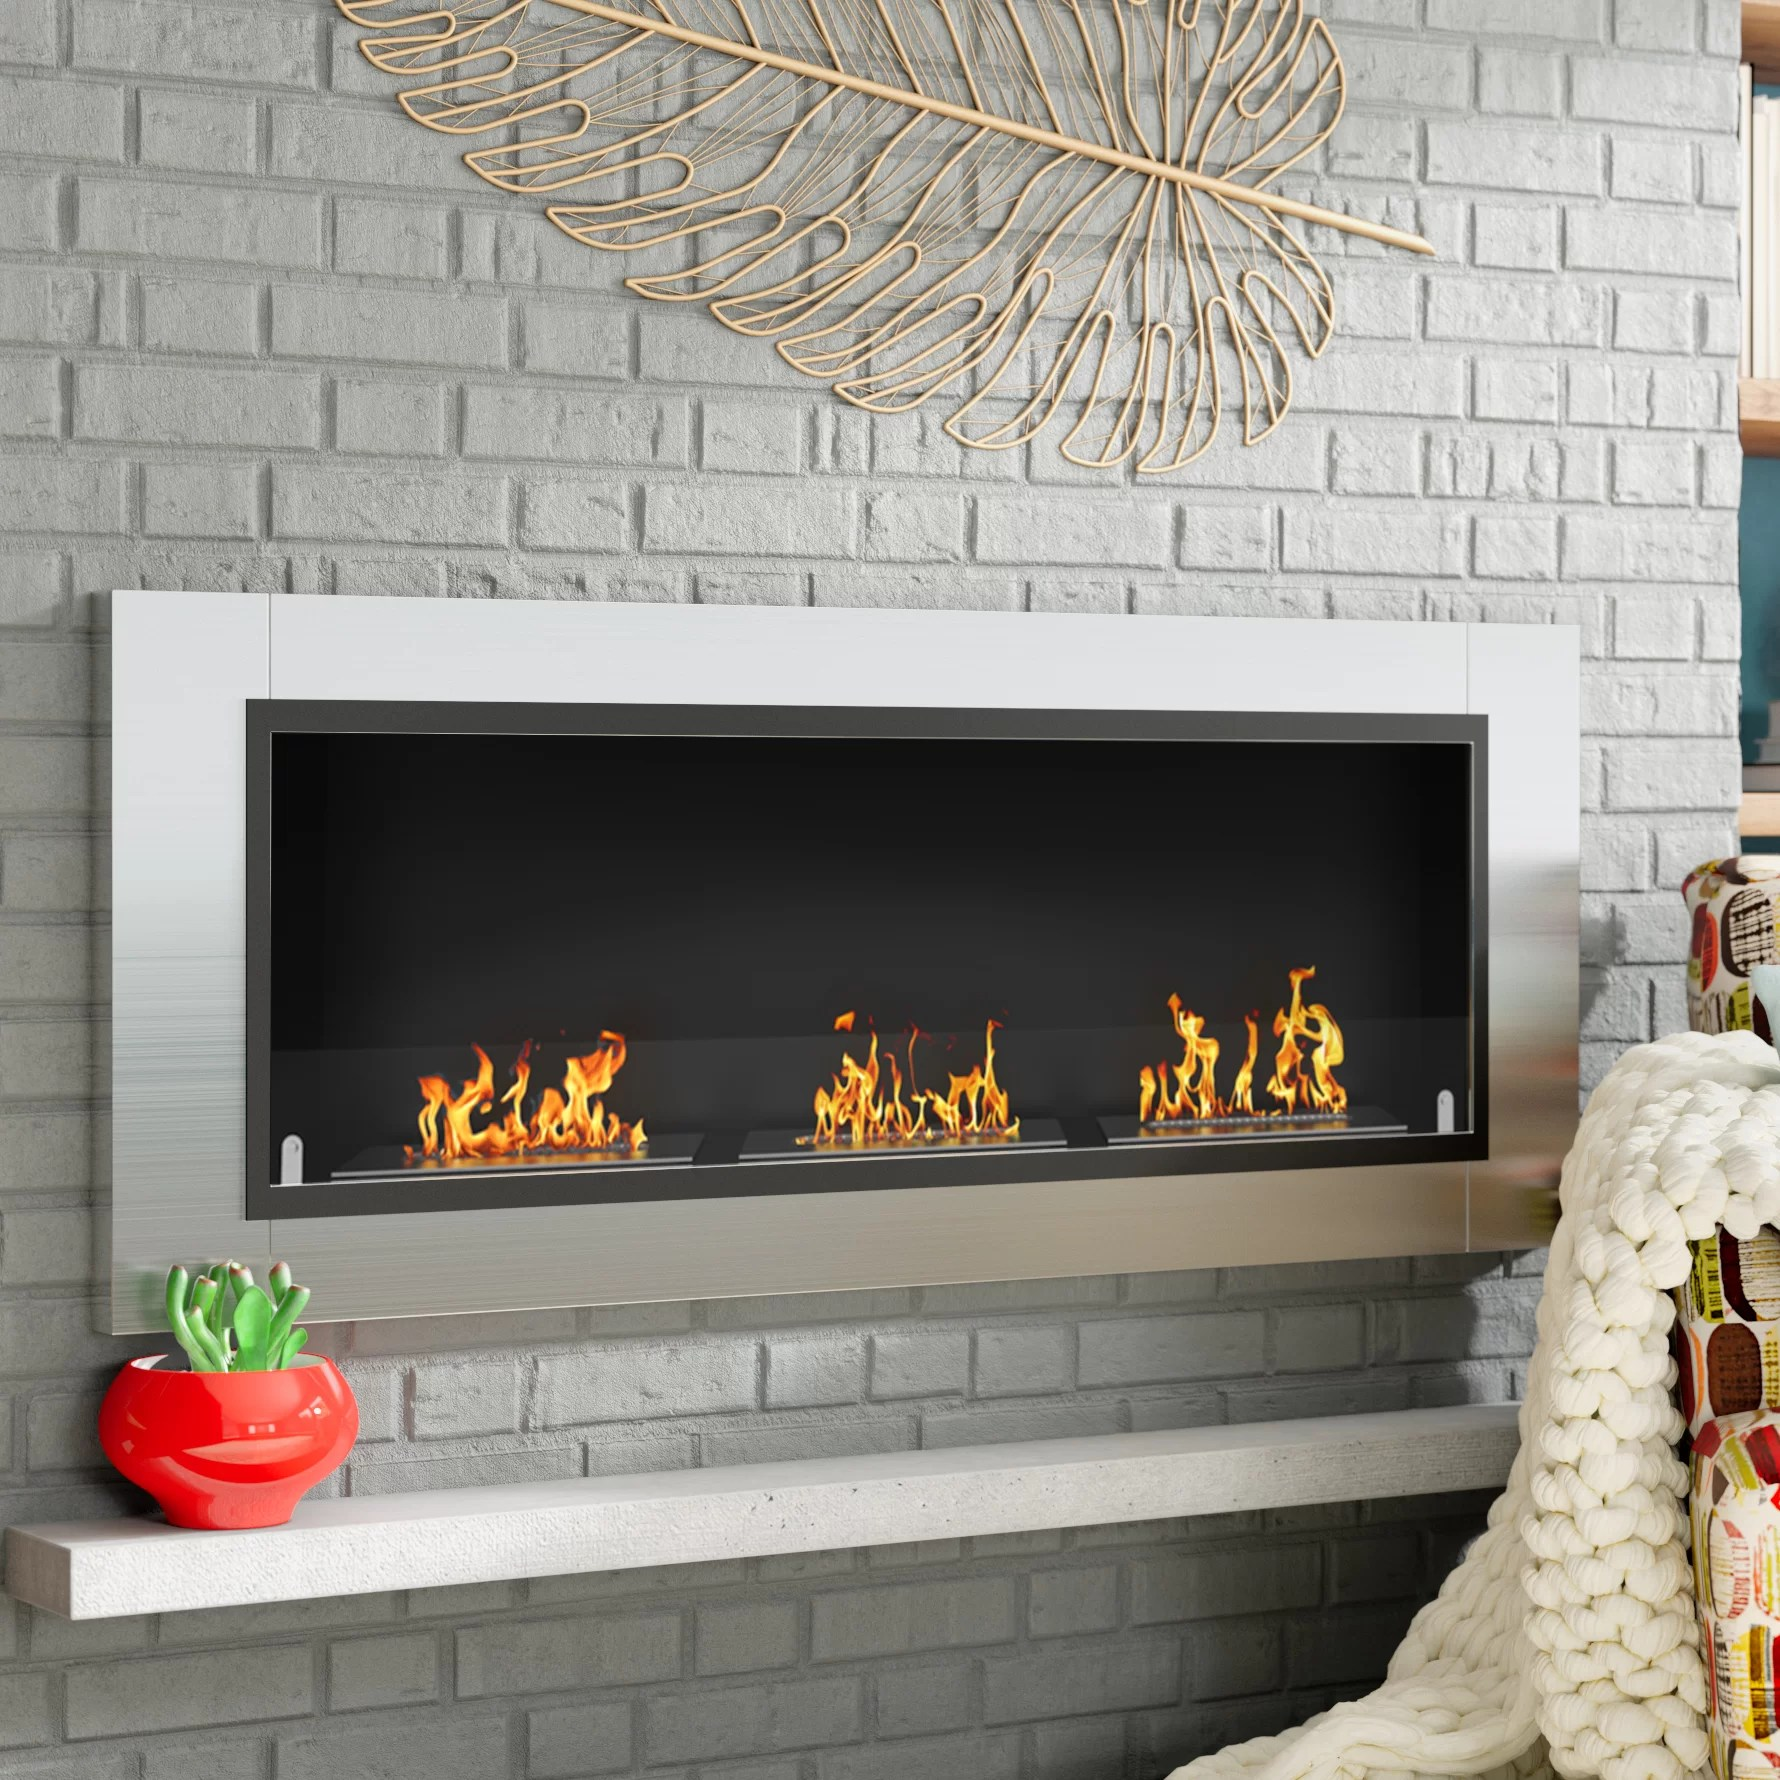 Wall Fireplace Gas Kelling Ventless Recessed Wall Mounted Bio Ethanol Fireplace